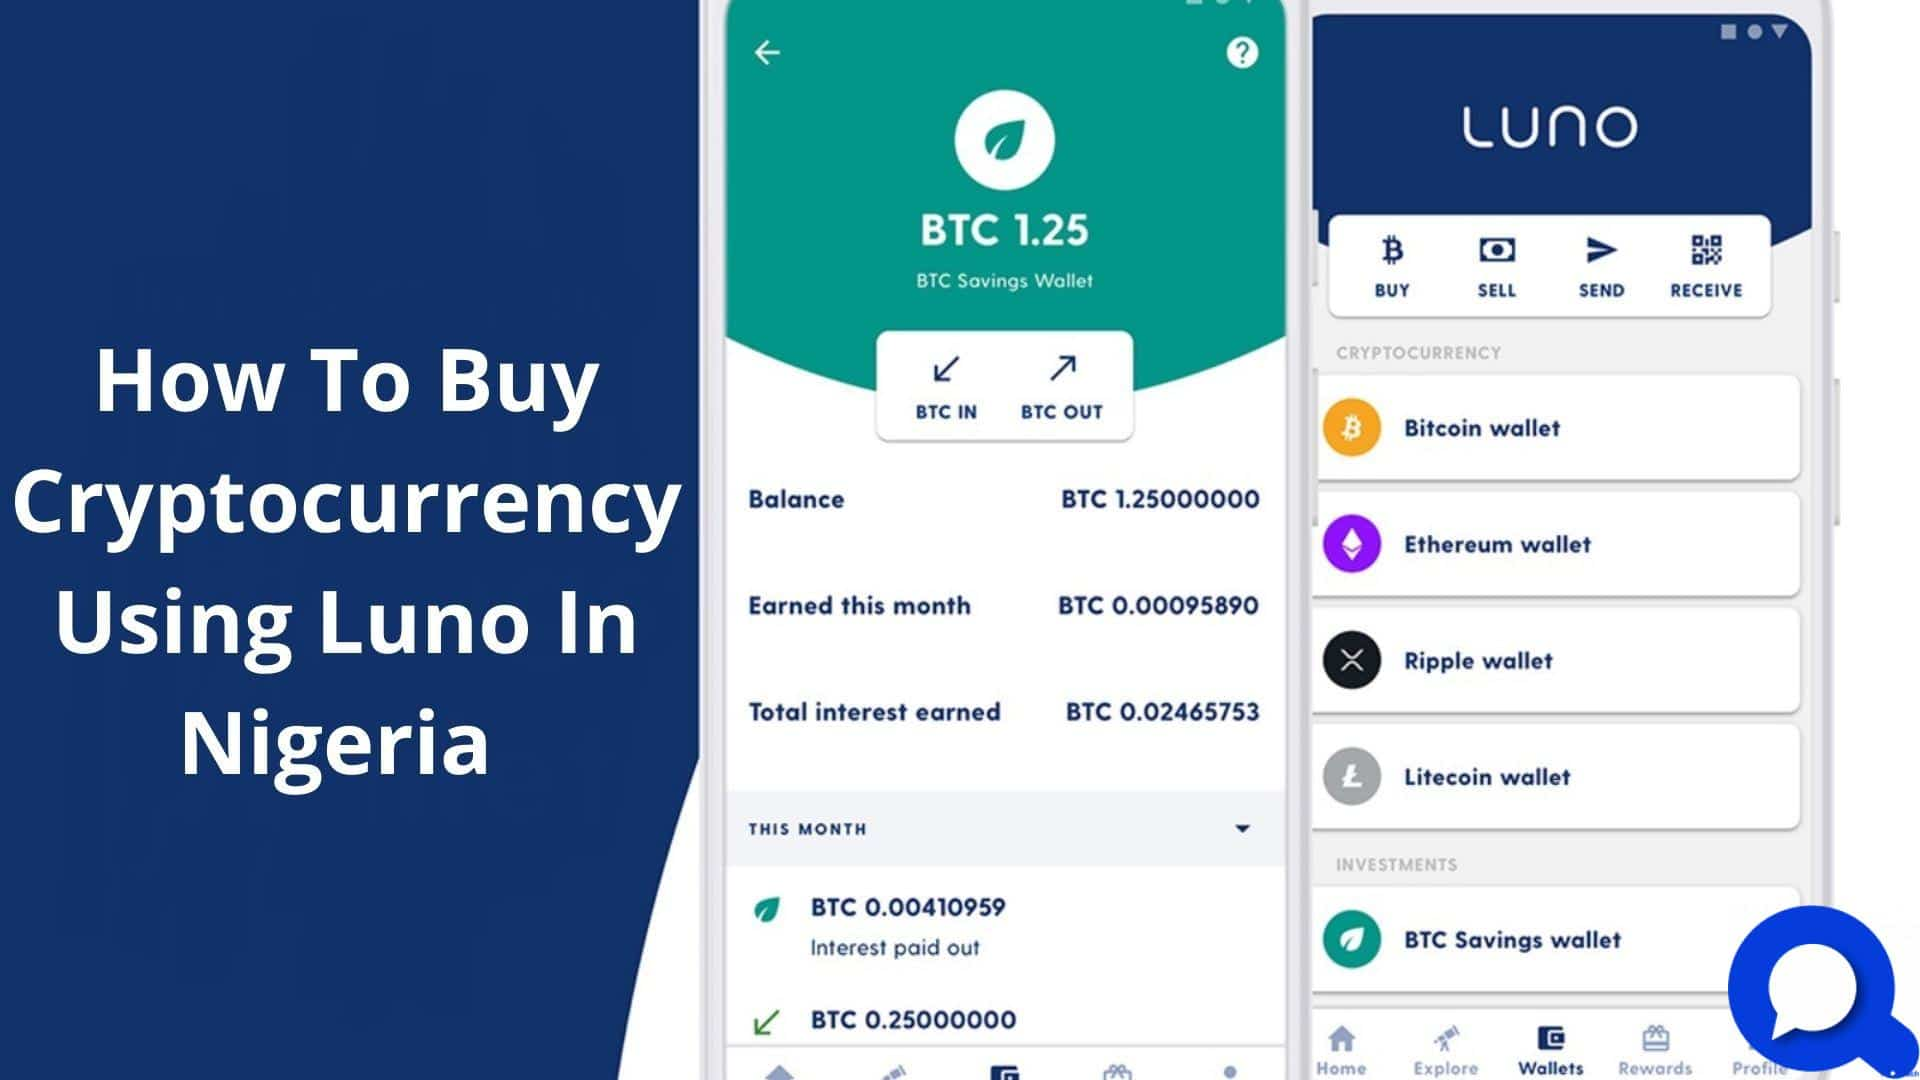 How To Buy Cryptocurrency Using Luno In Nigeria